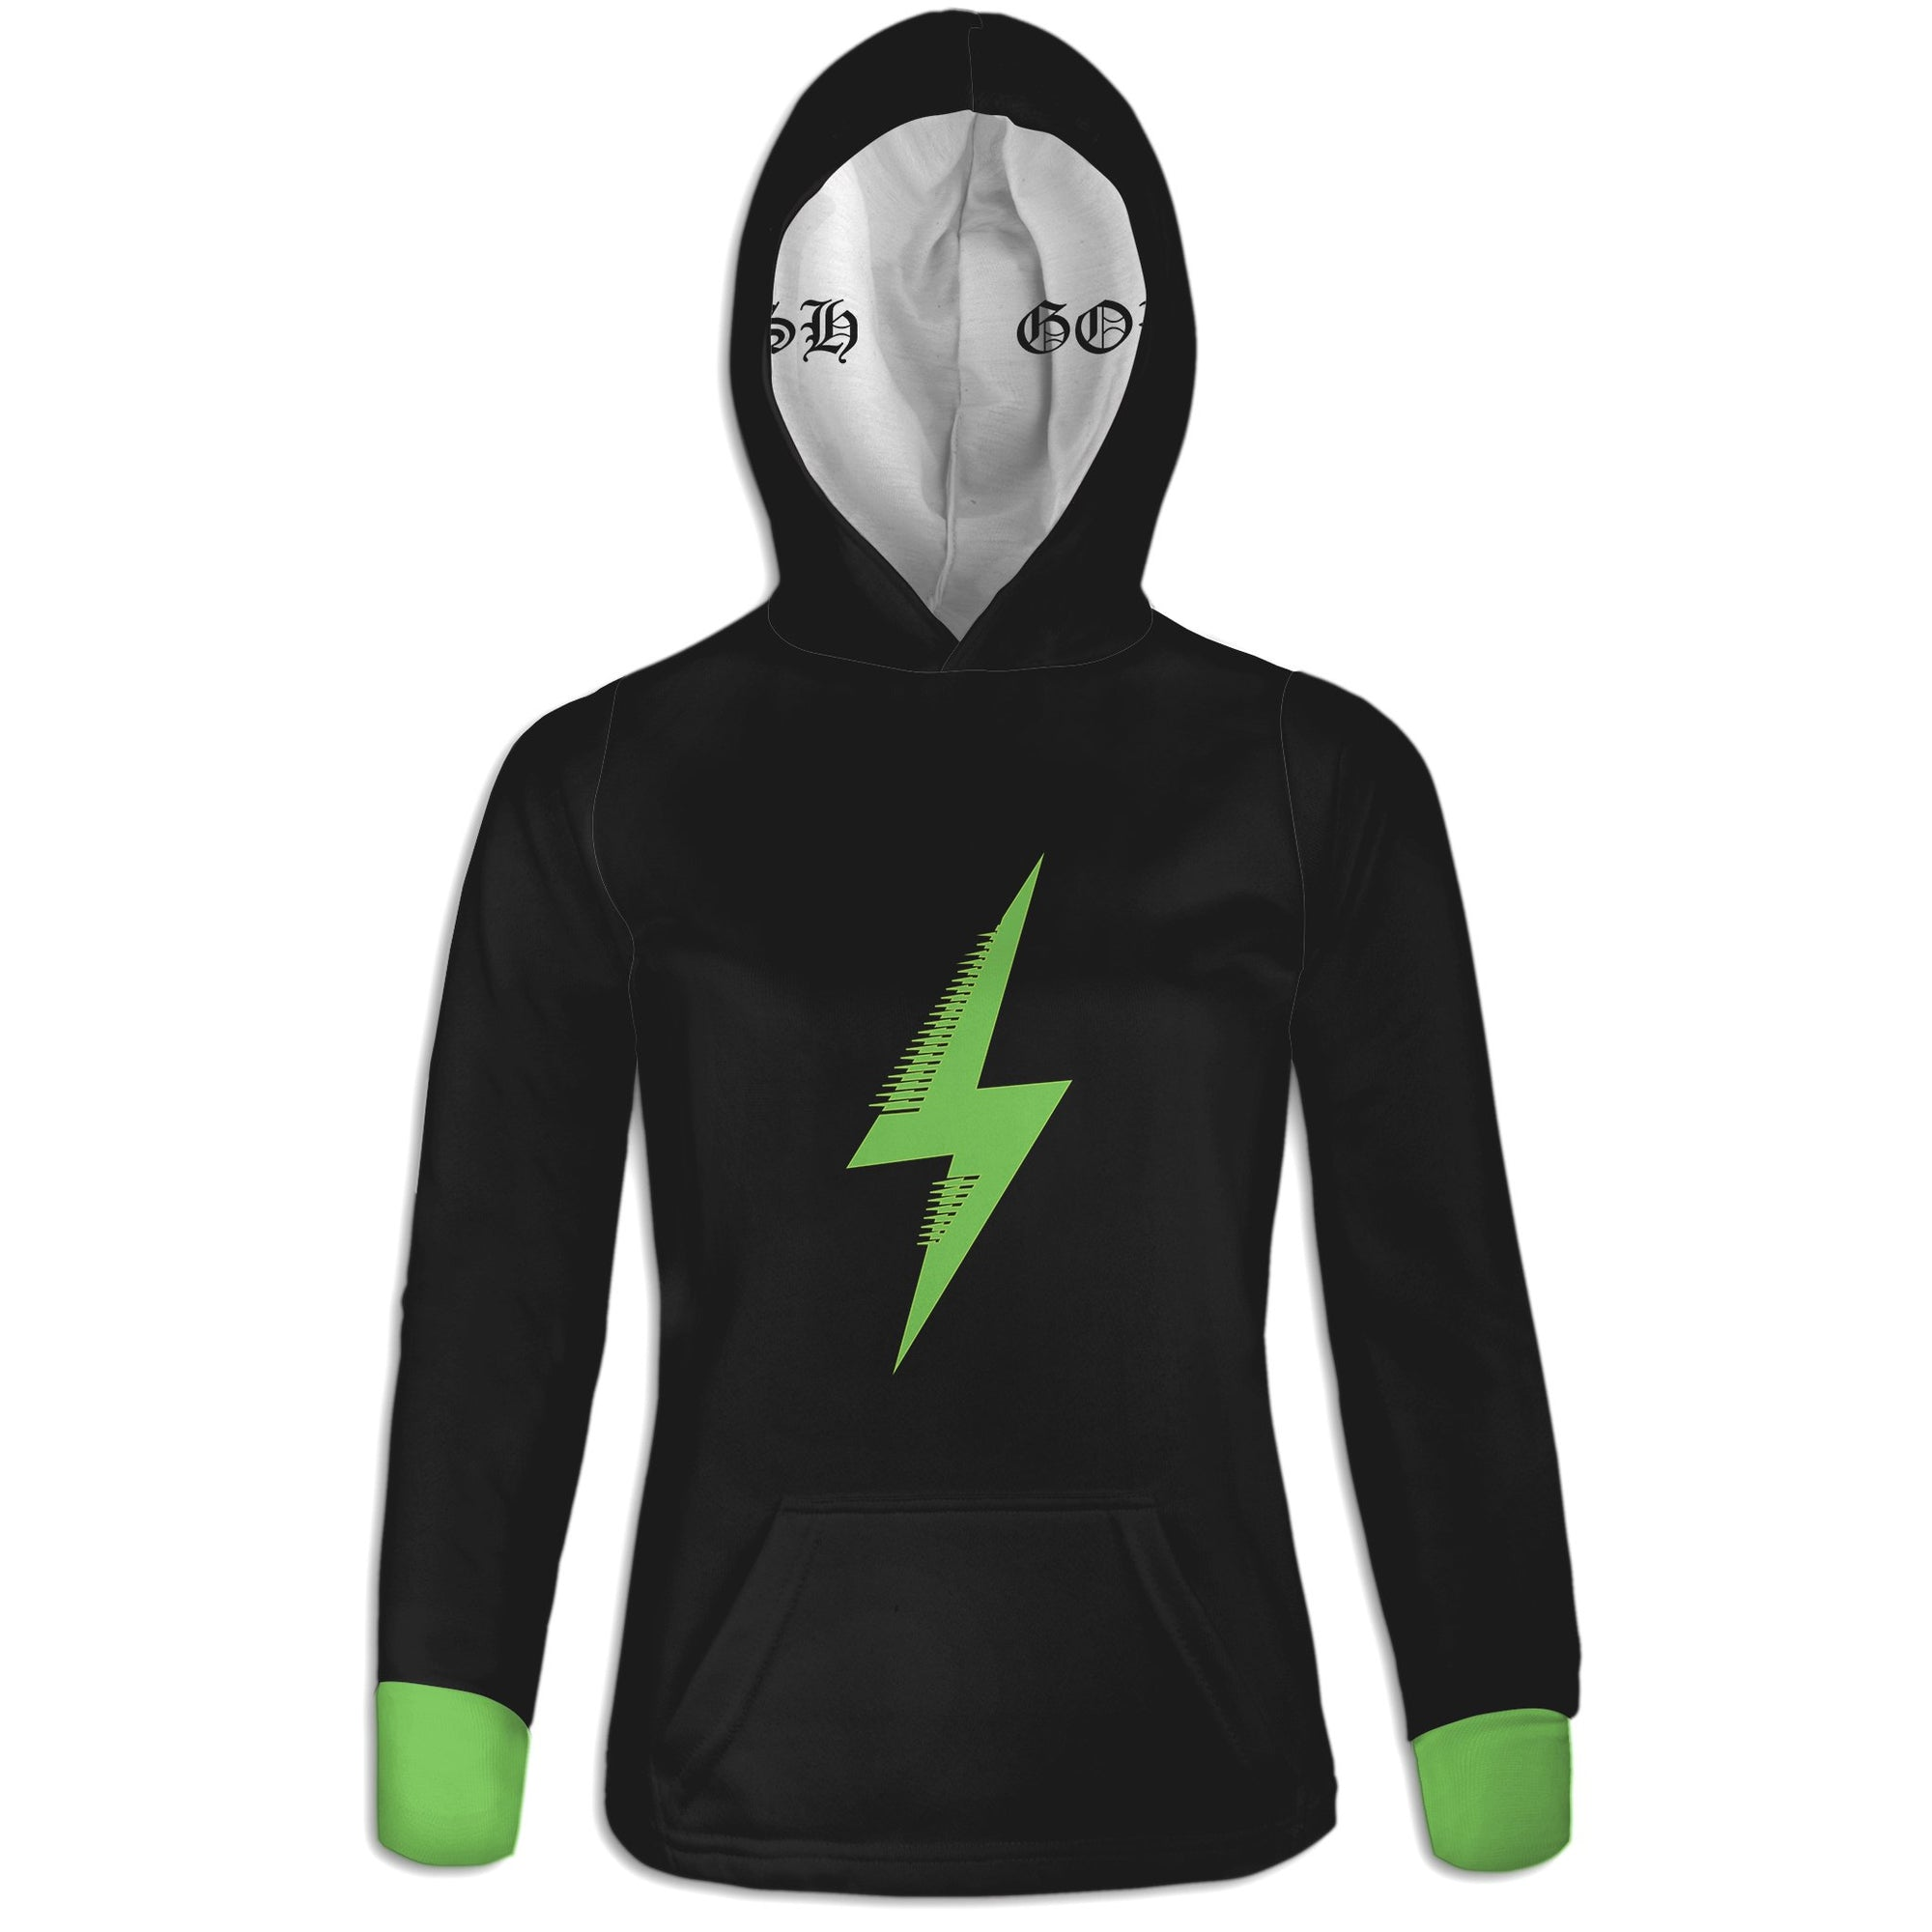 Imagine Womens Hoodie | flashgordonshop.com